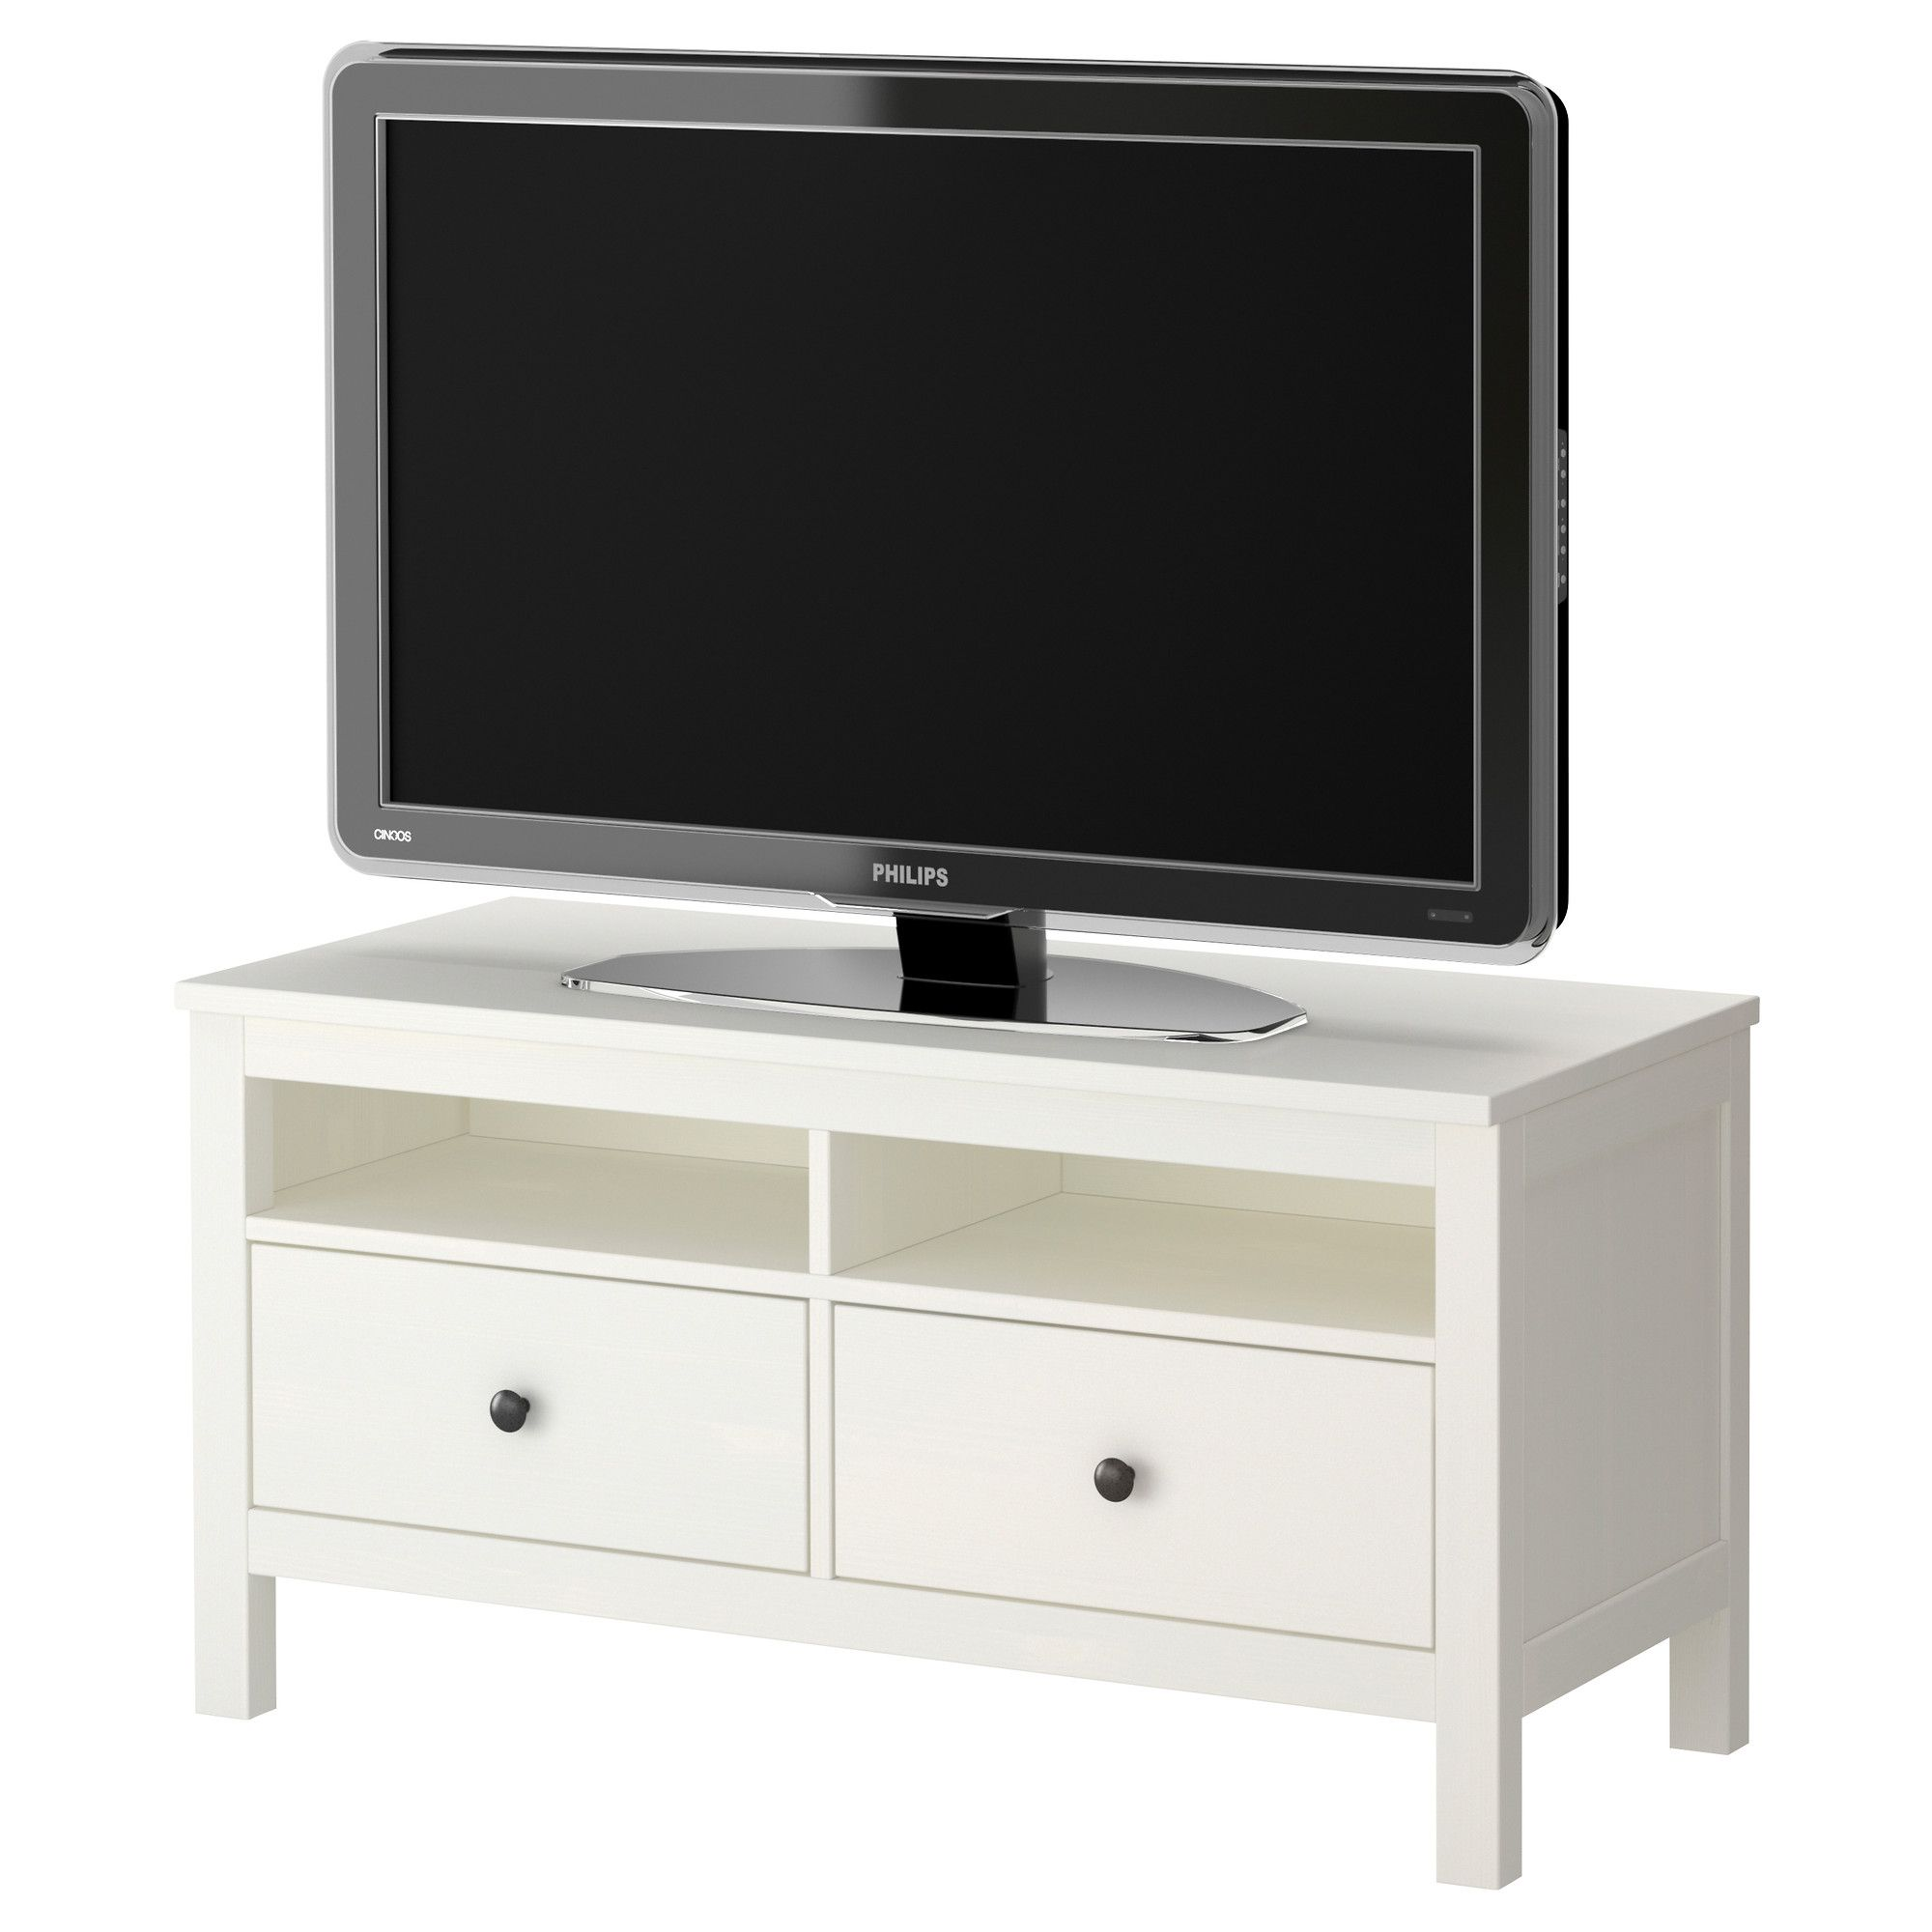 Hemnes mueble tv blanco ikea decoraci n pinterest for Mueble hemnes ikea